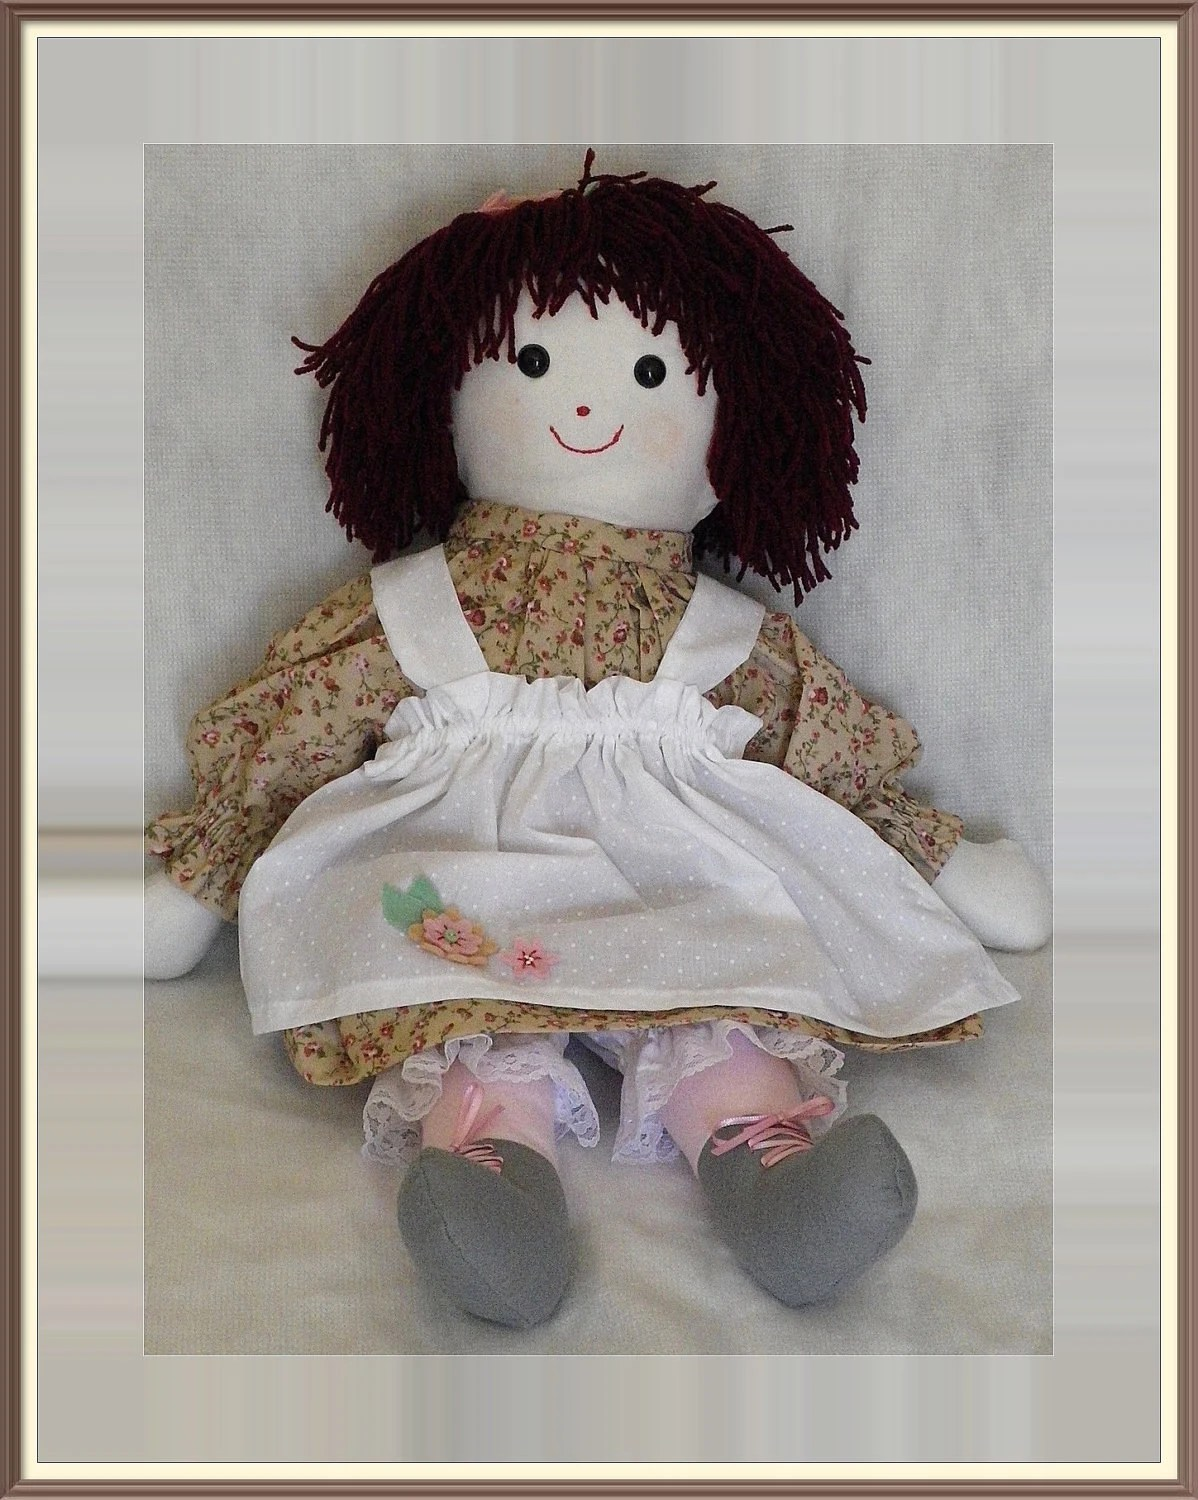 Cloth doll, Art Doll, Rag Doll, redhead, apron, dress, ditsy print, OOAK,  Uk seller